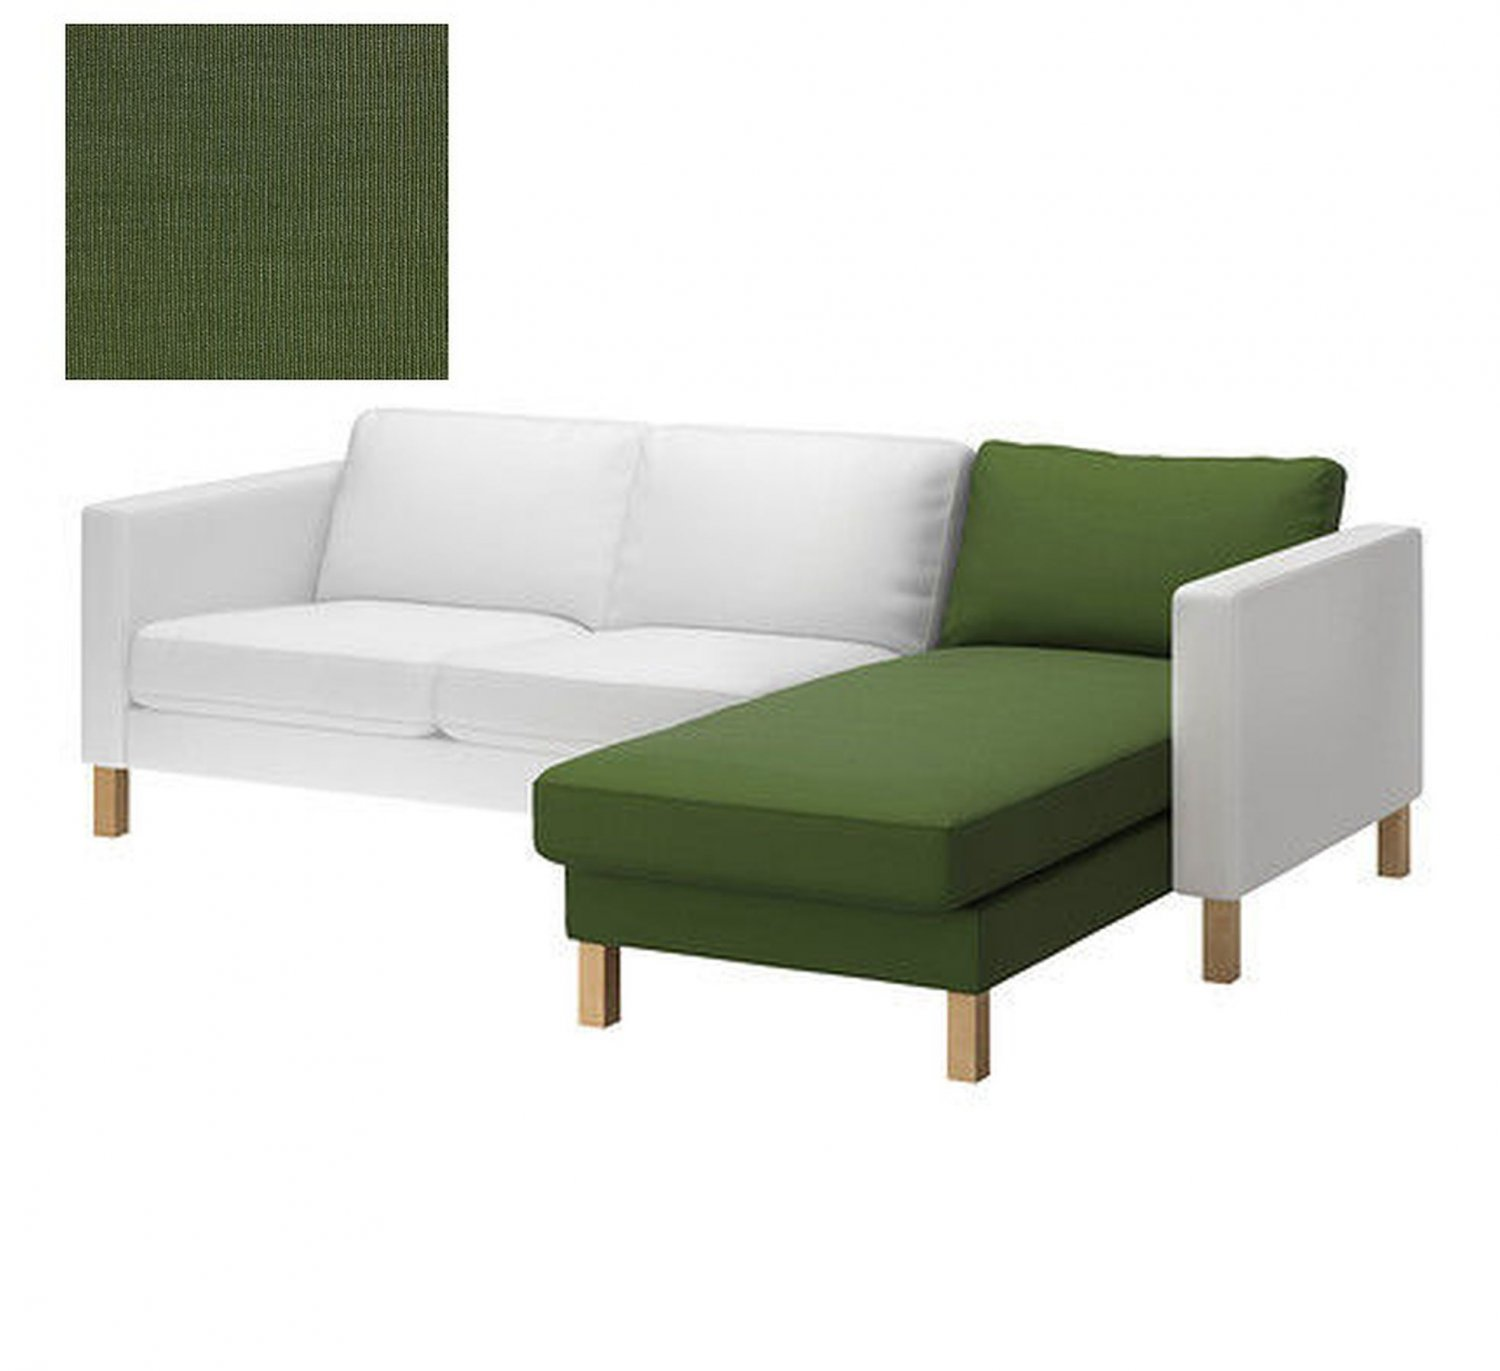 Ikea KARLSTAD Add On Chaise SLIPCOVER Cover SIVIK DARK GREEN Mid Century Modern